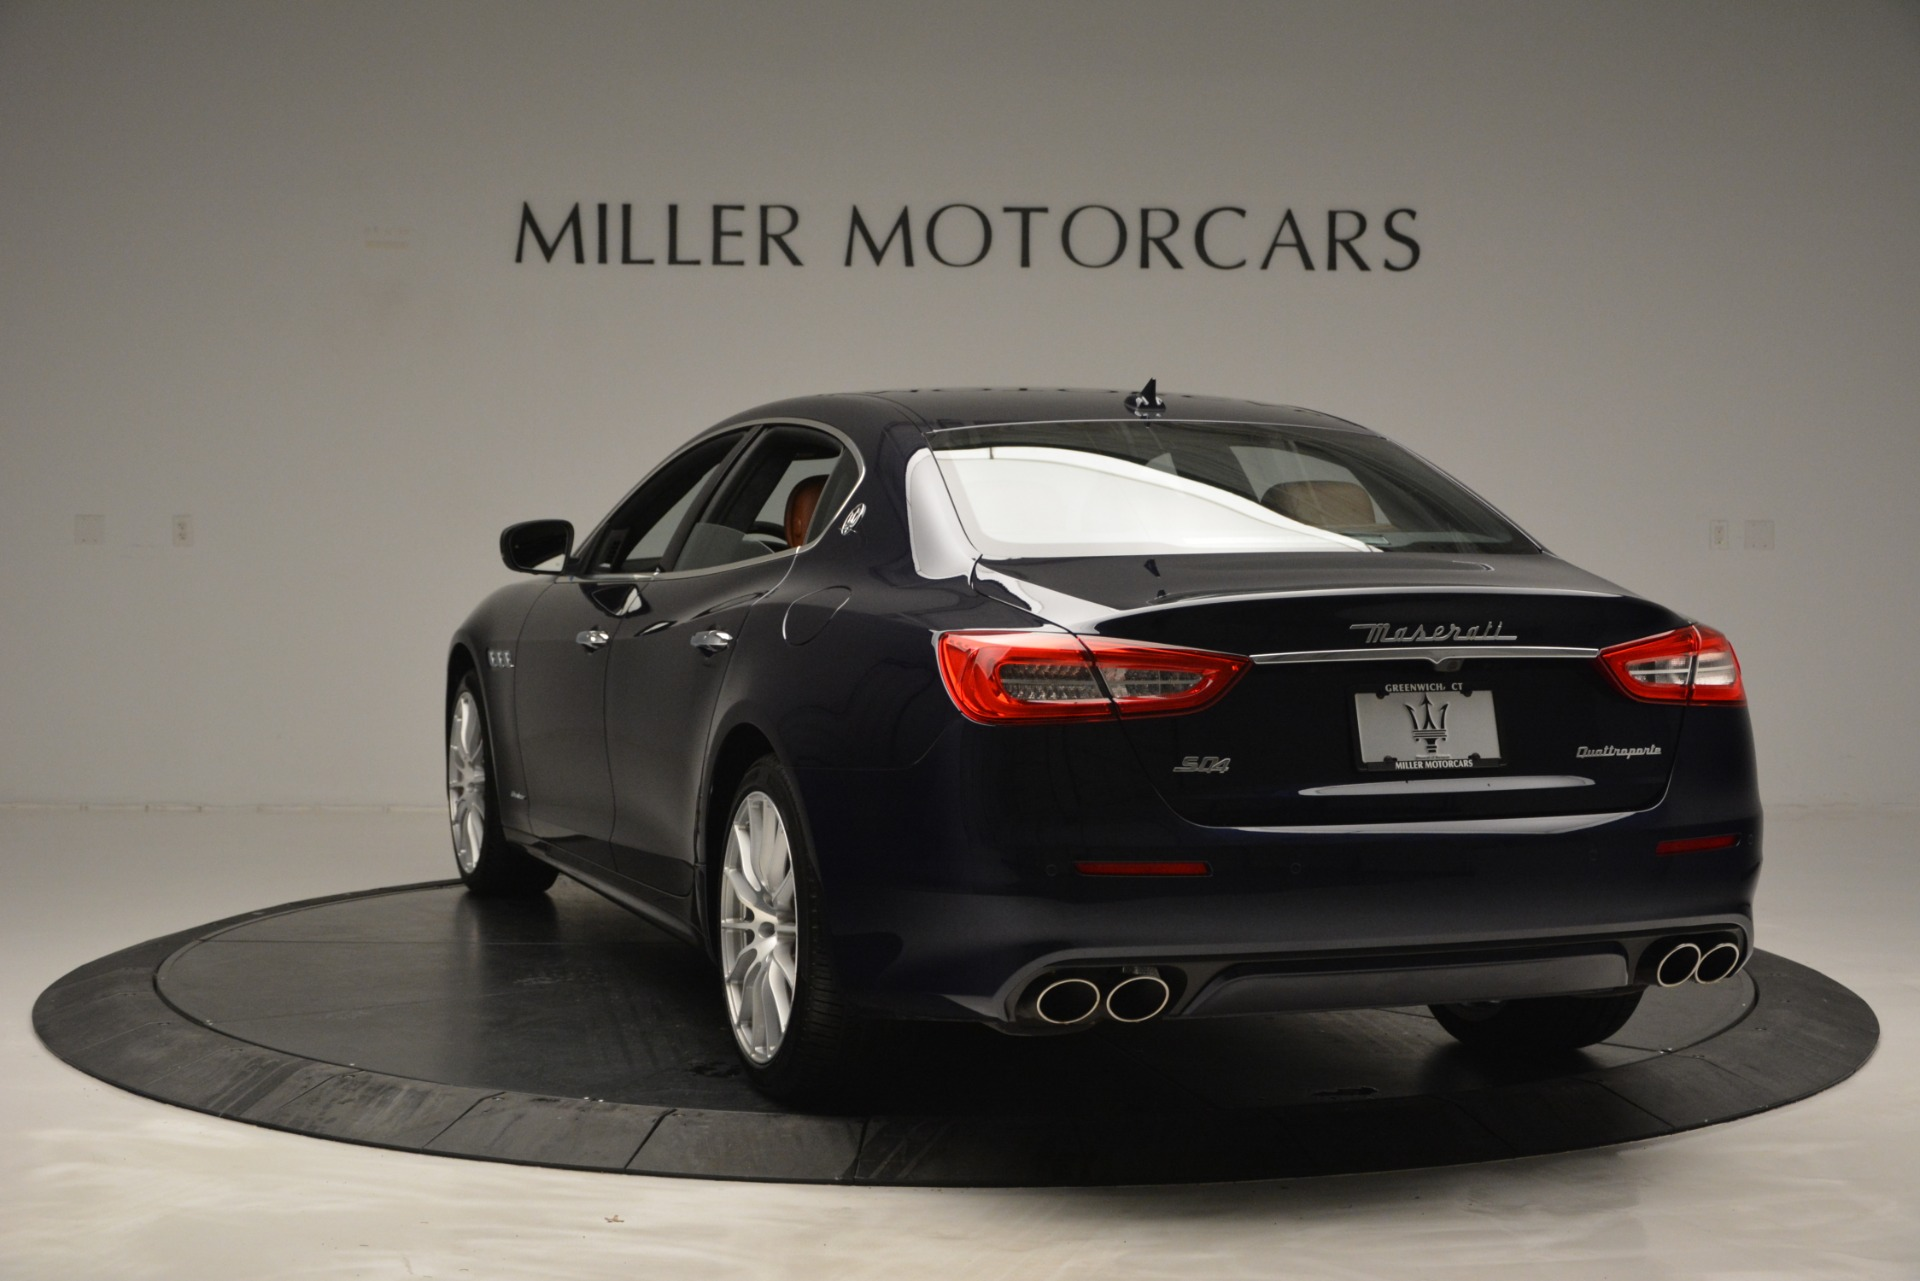 New 2019 Maserati Quattroporte S Q4 GranLusso For Sale In Westport, CT 2620_p5